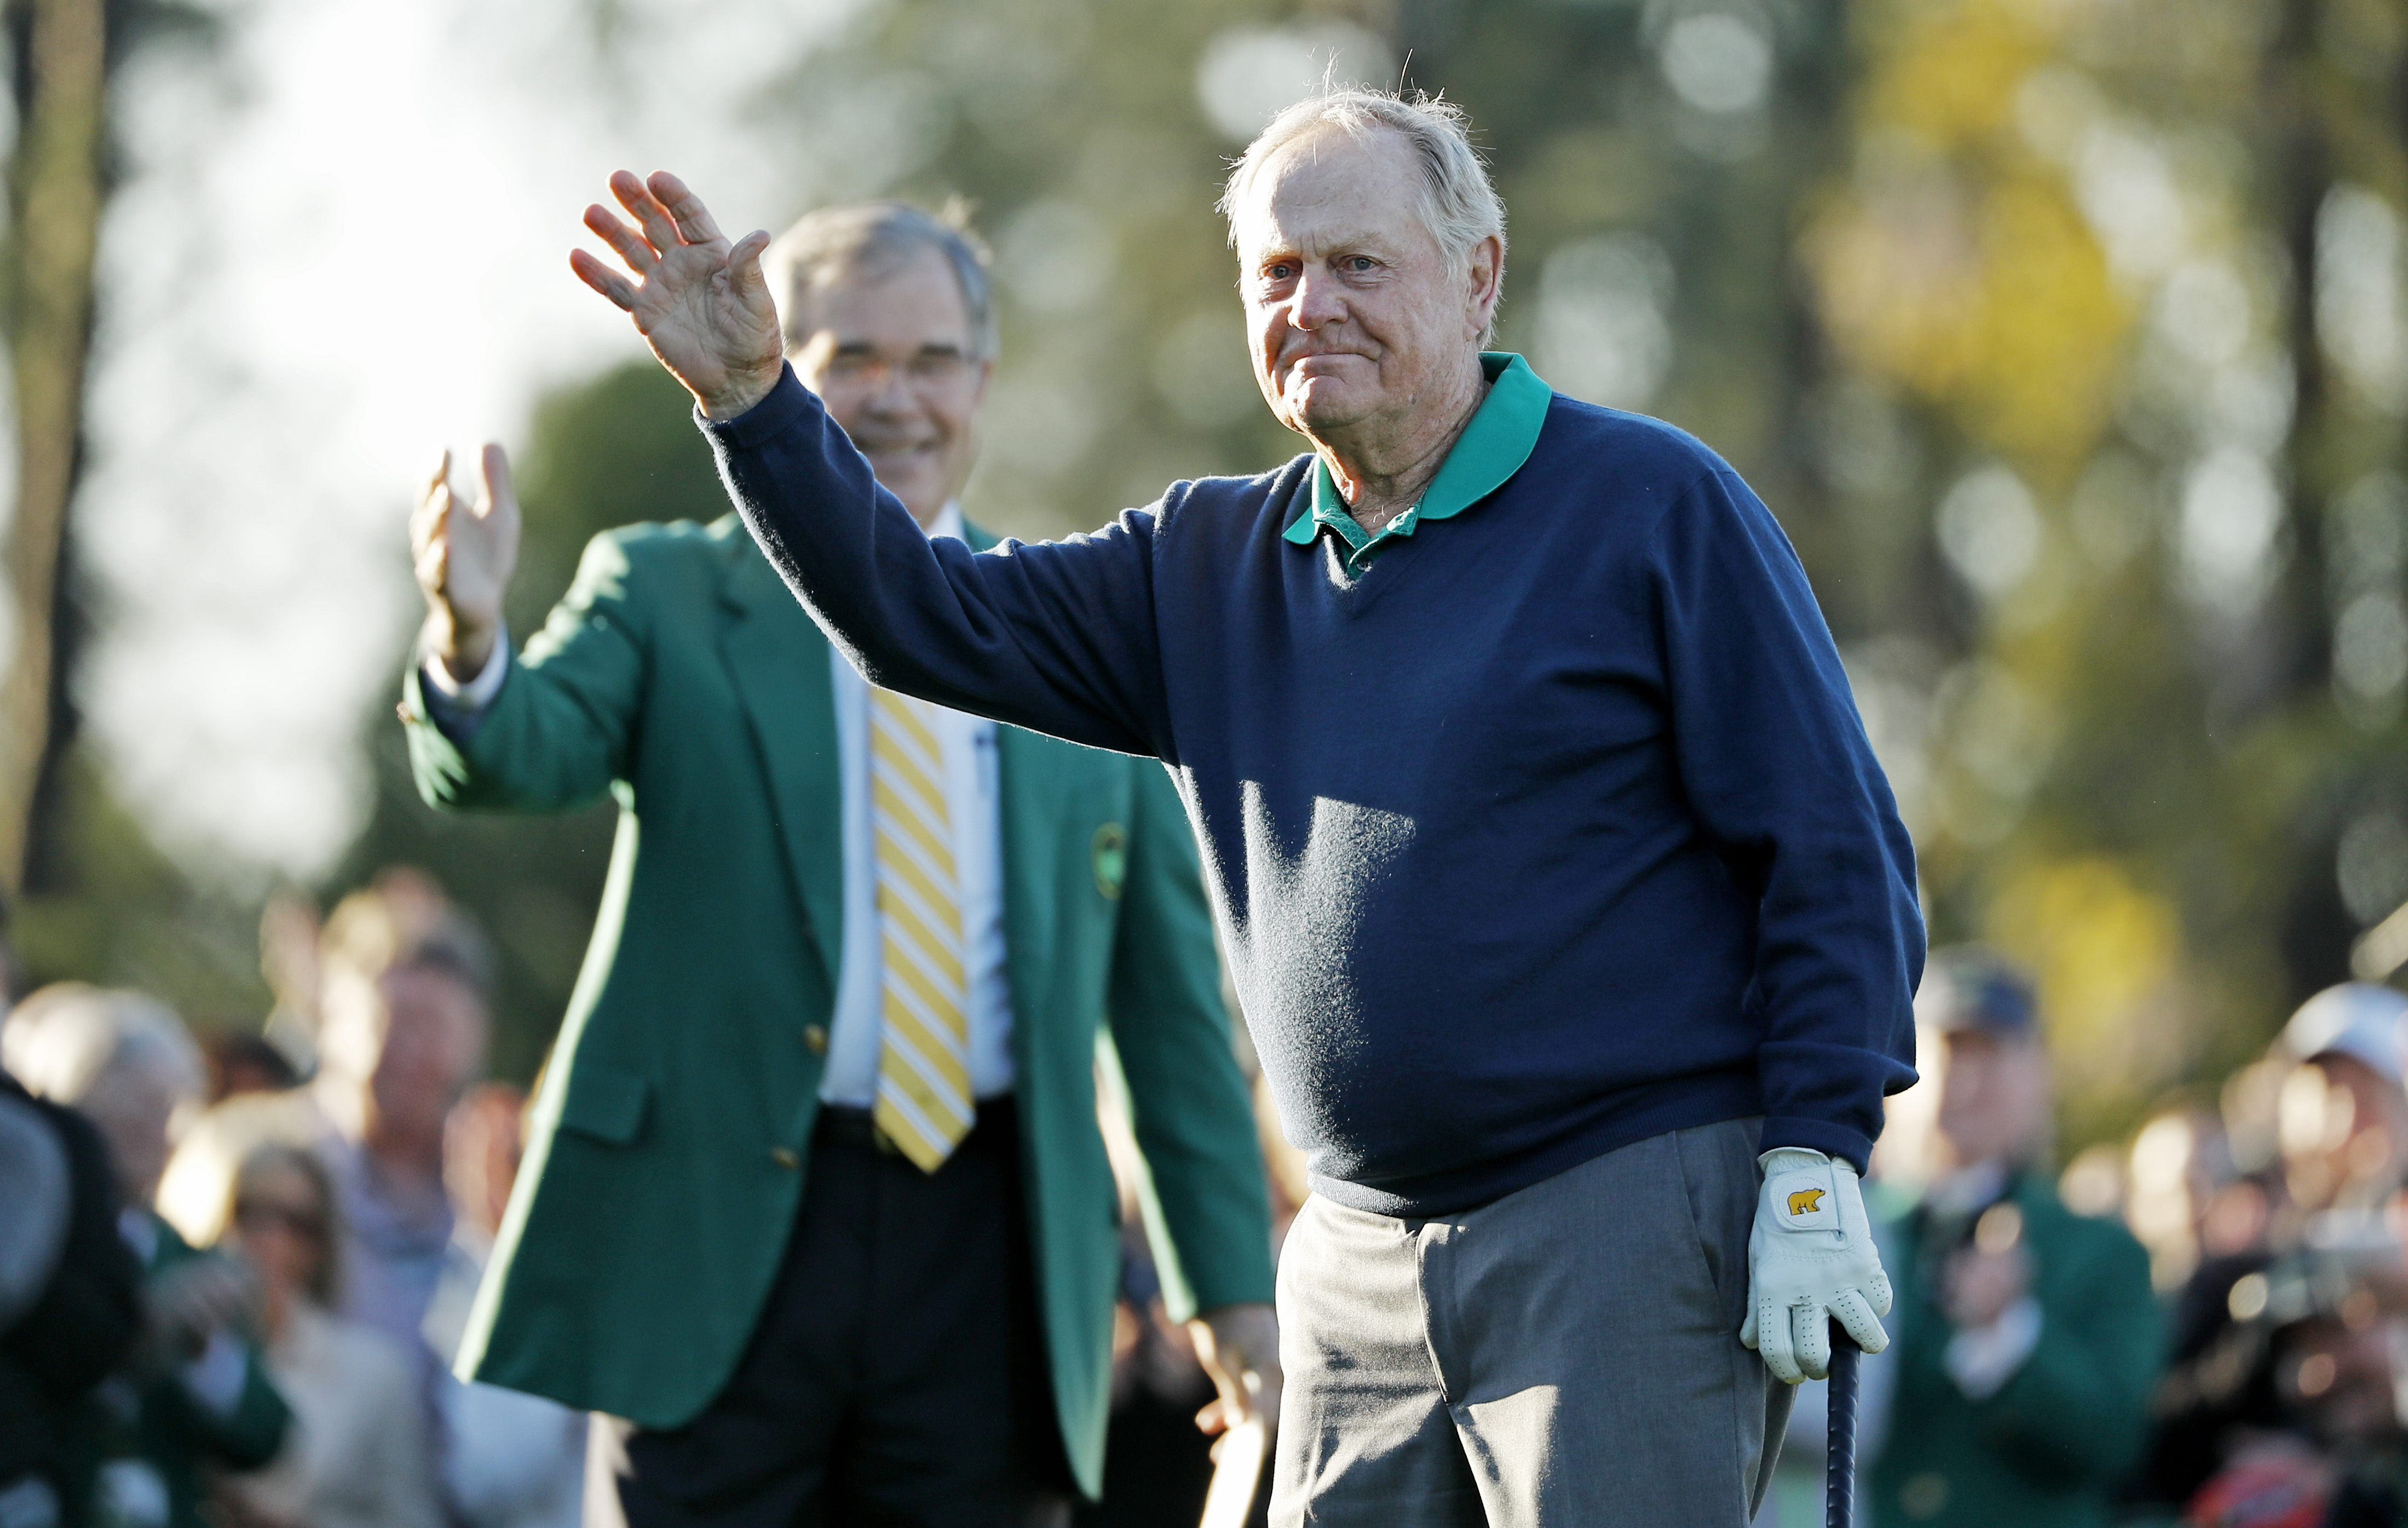 Jack Nicklaus waves before hitting a ceremonial first tee before the first round of the Masters golf tournament Thursday, April 7, 2016, in Augusta, Ga. Behind his Billy Payne, CEO and Chairman of Augusta National Golf Course. (AP Photo/Matt Slocum)